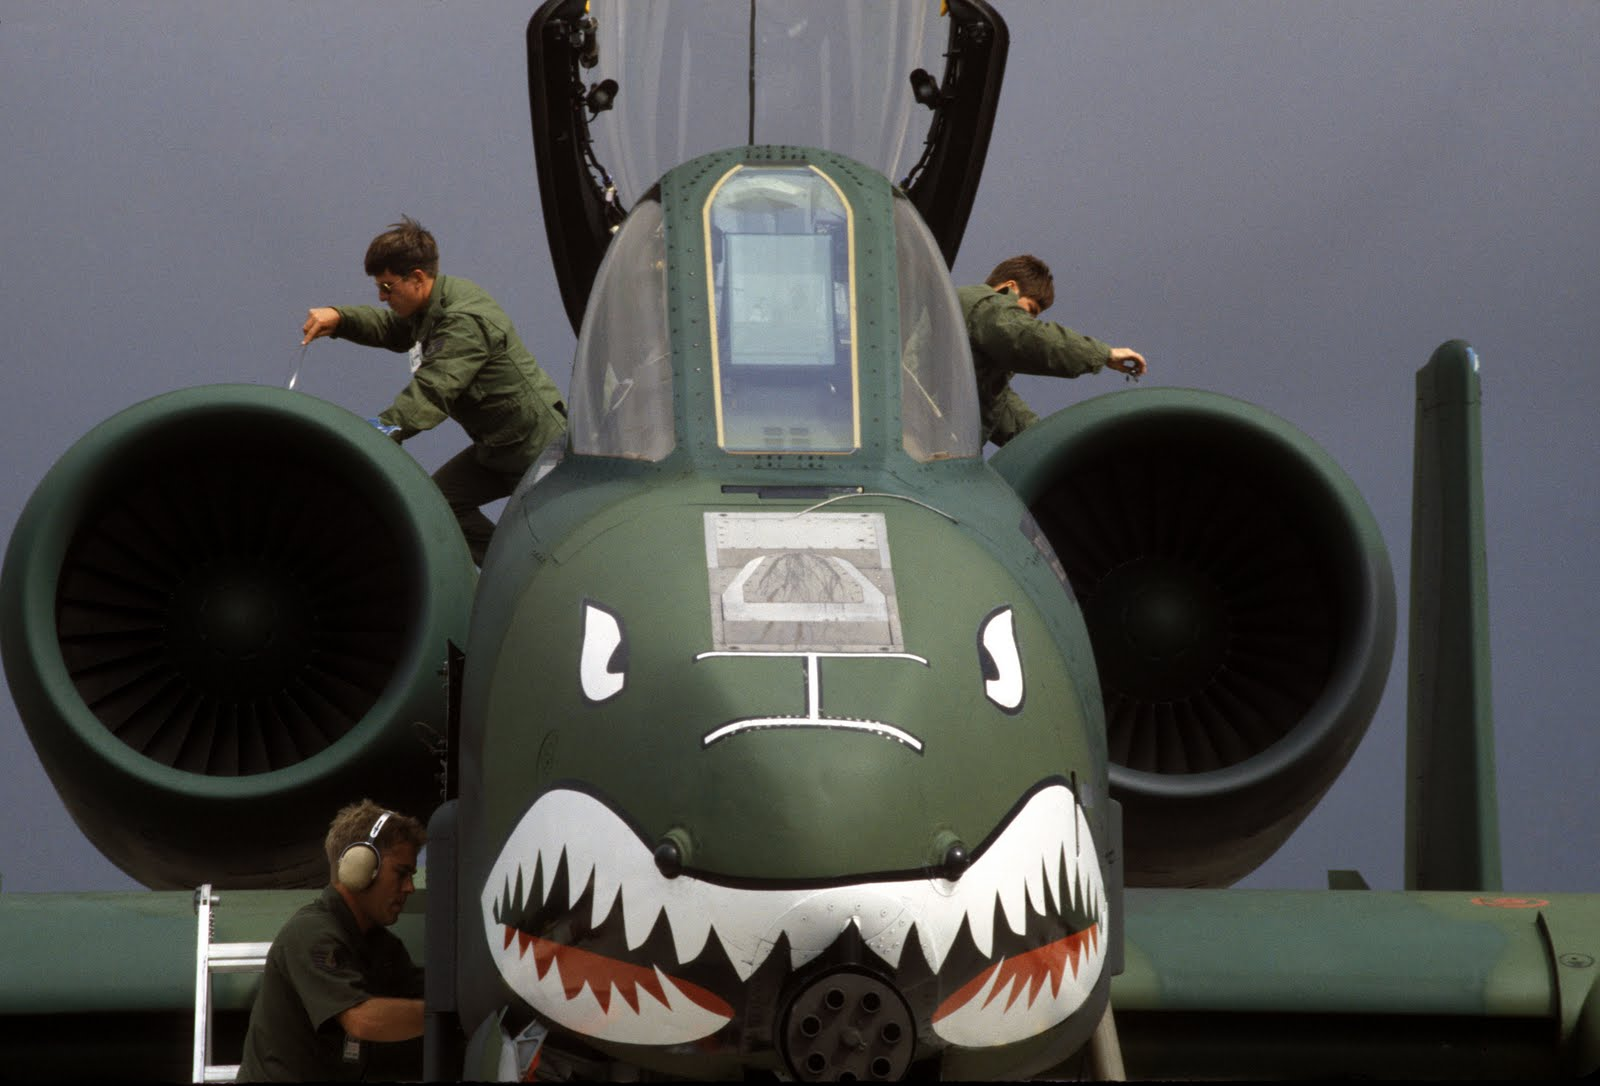 Plane Shark Mouth WW2 http://aircraft-wallpapers.blogspot.com/2011/01/aircraft-wallpapers-131-10-in-service.html